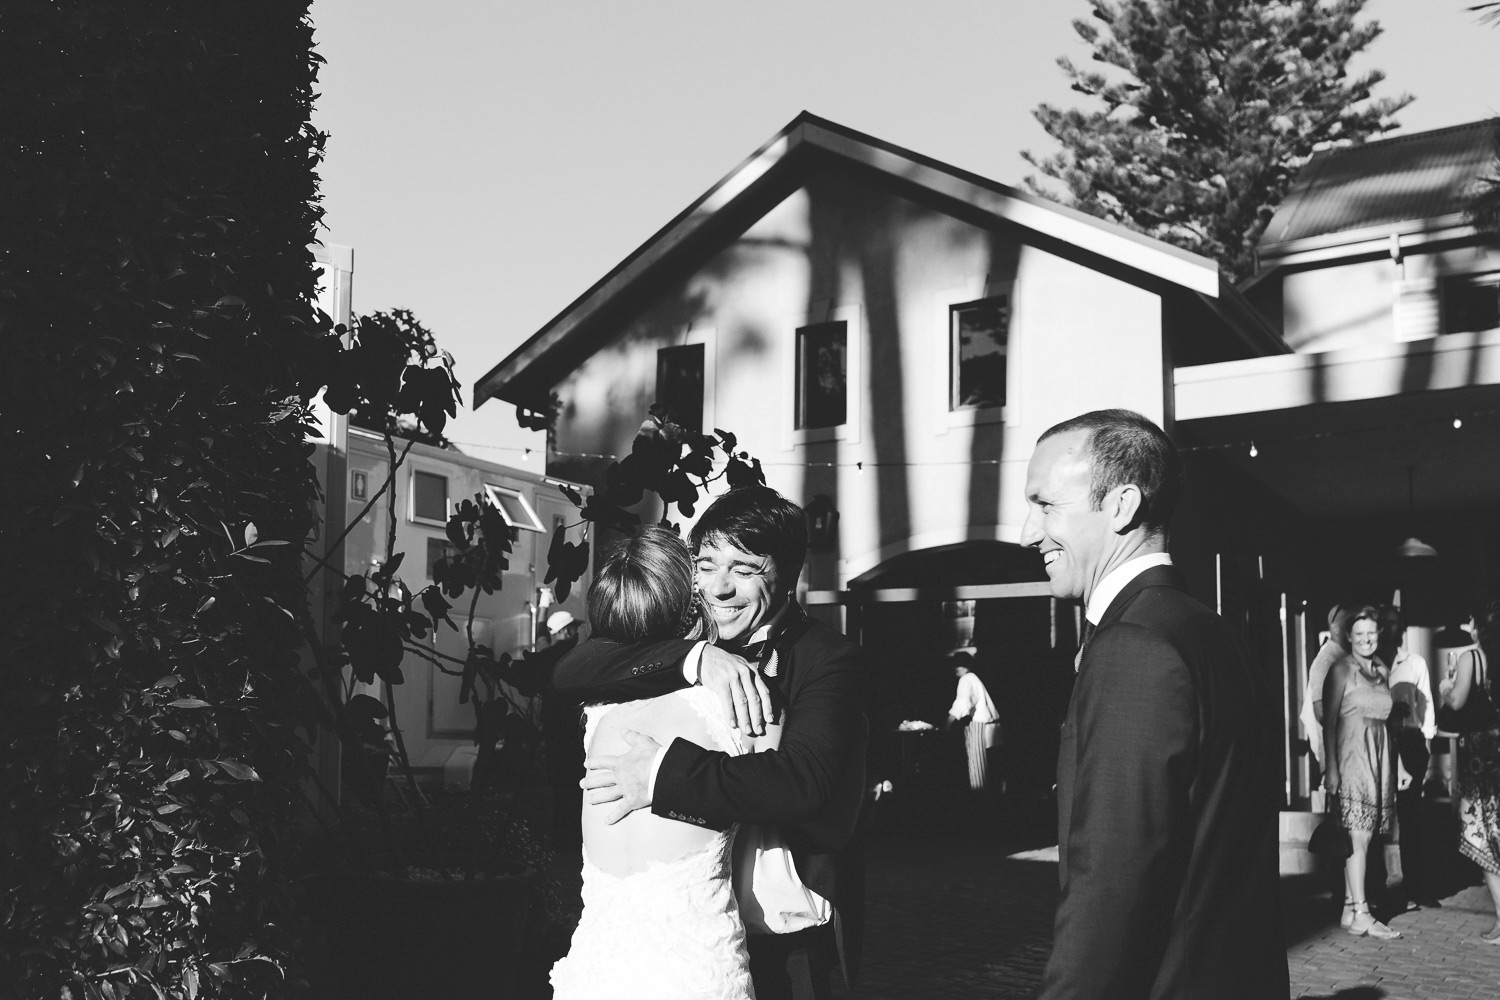 cape-town-wedding-photographer-western-cape-constansia-camilla-charlie-ray75.jpg